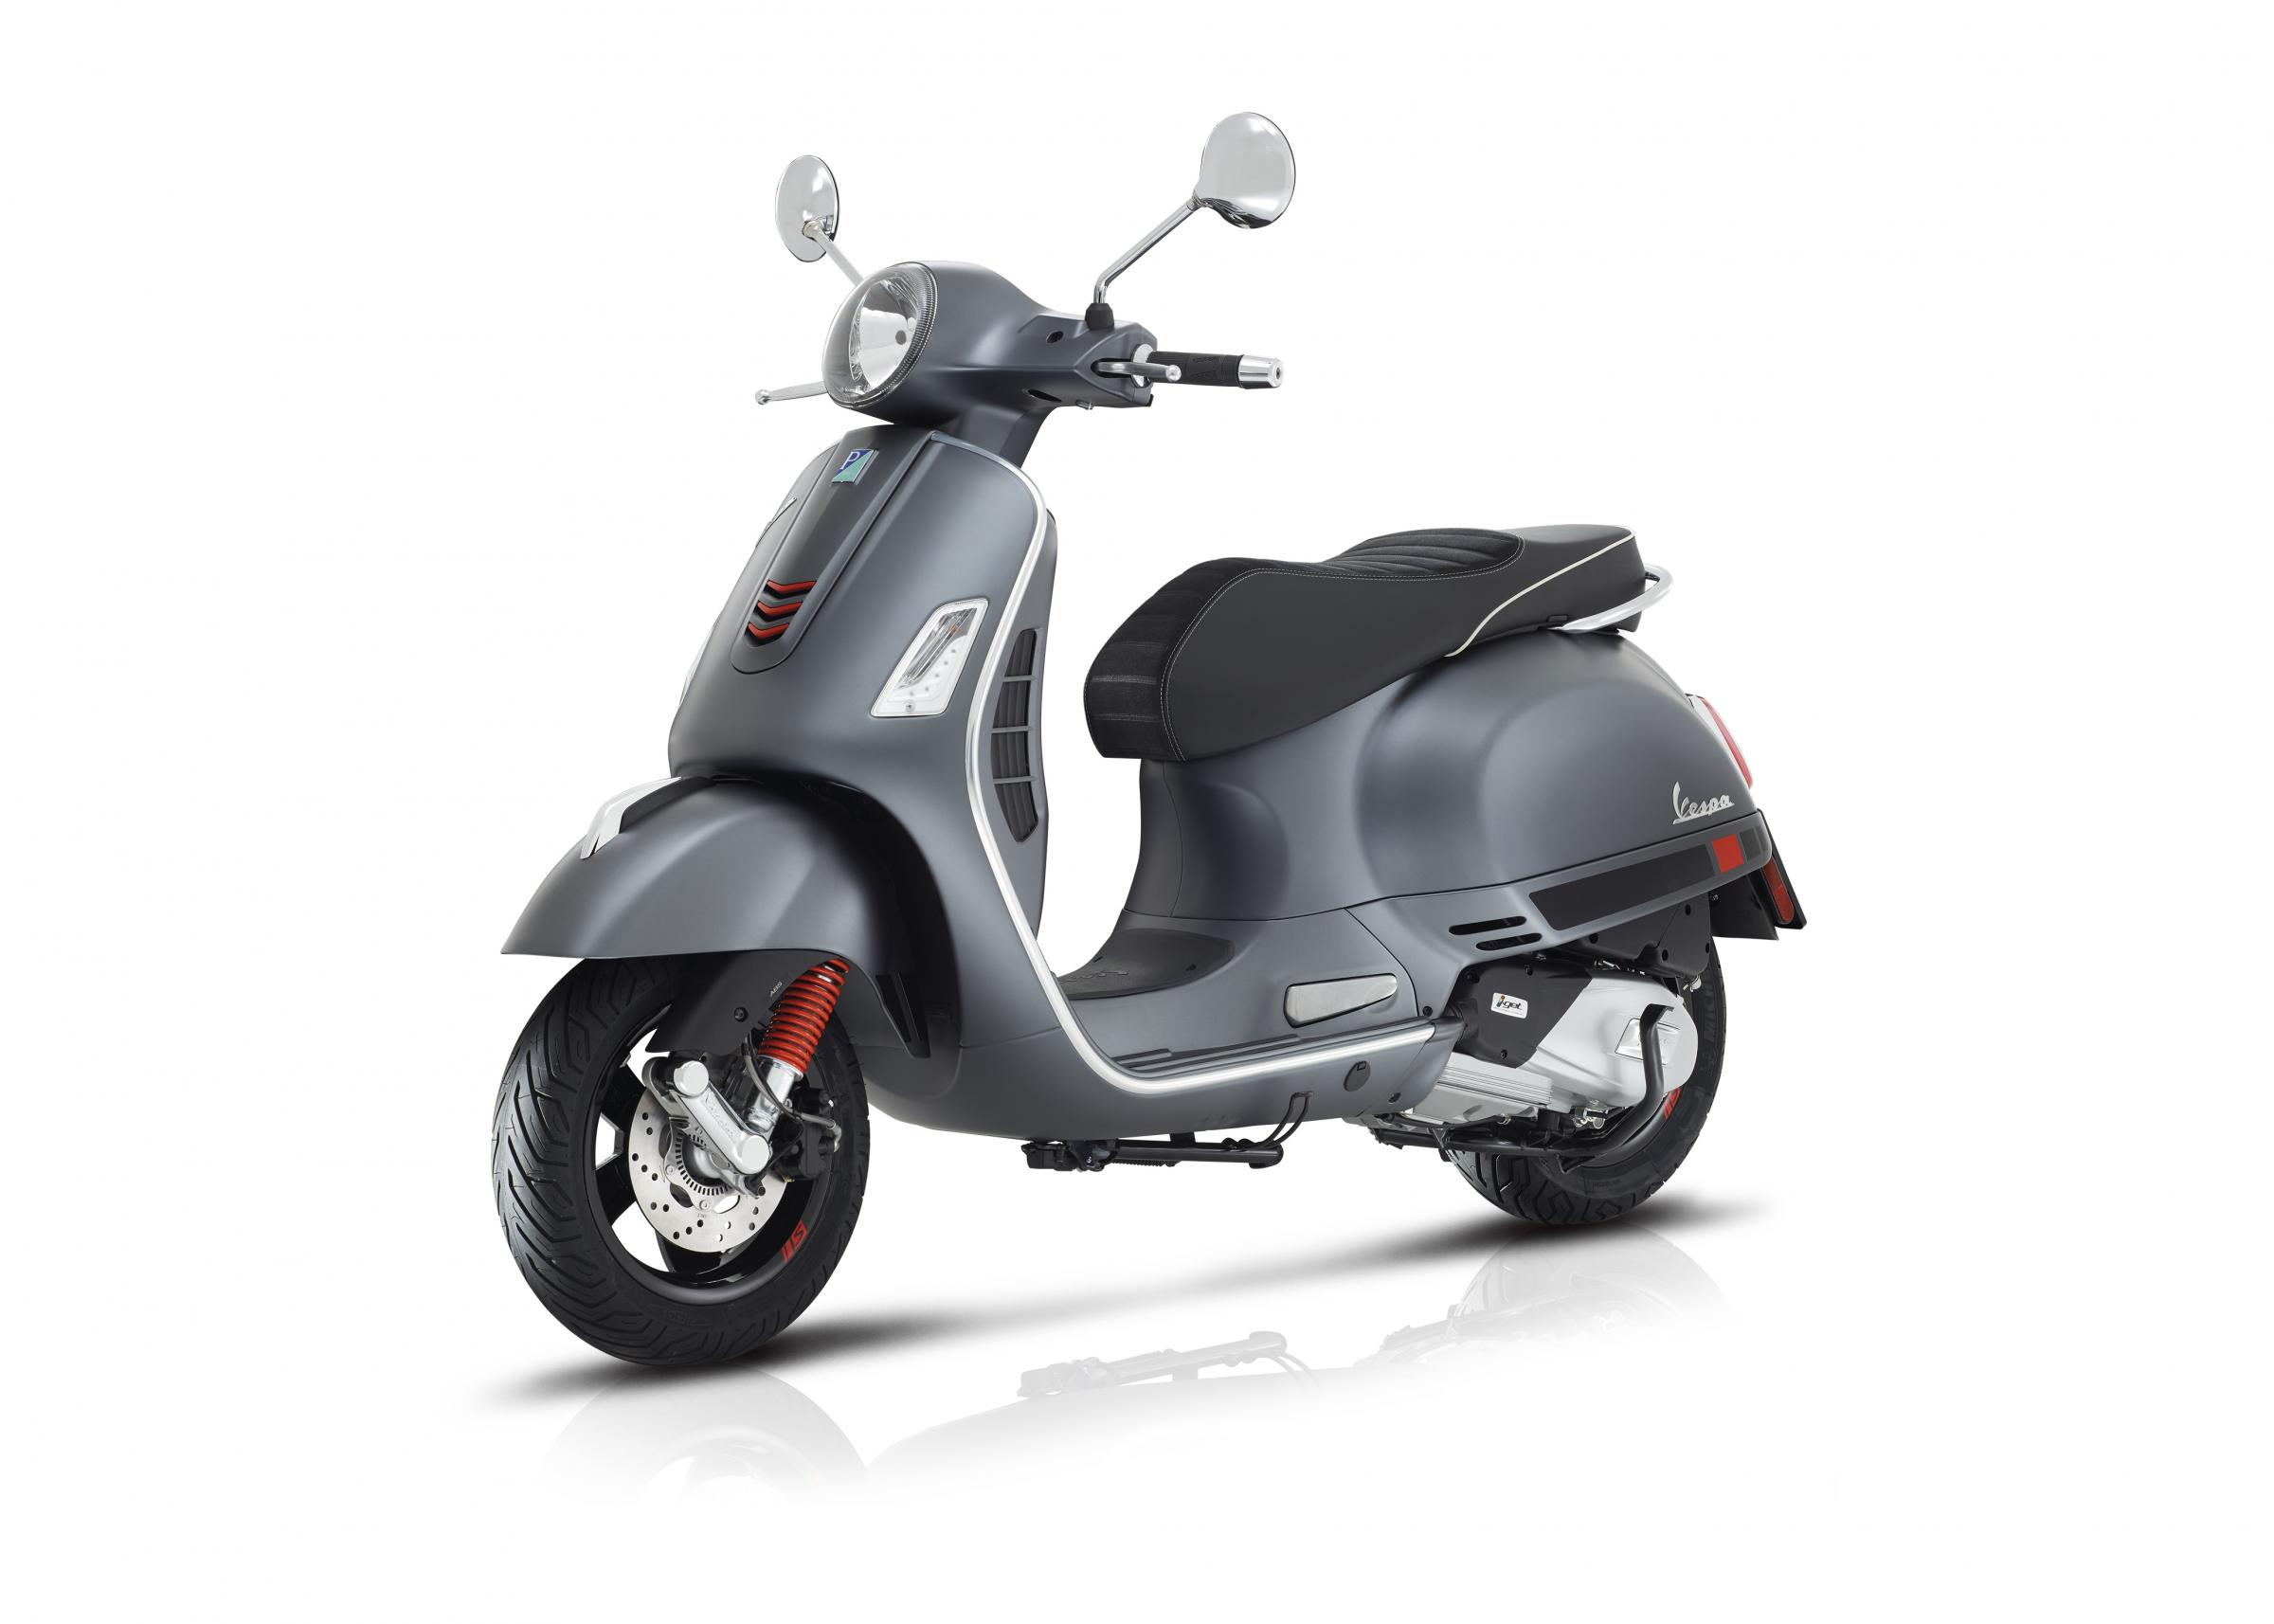 vespa gts 125 cc ie abs freescoot. Black Bedroom Furniture Sets. Home Design Ideas